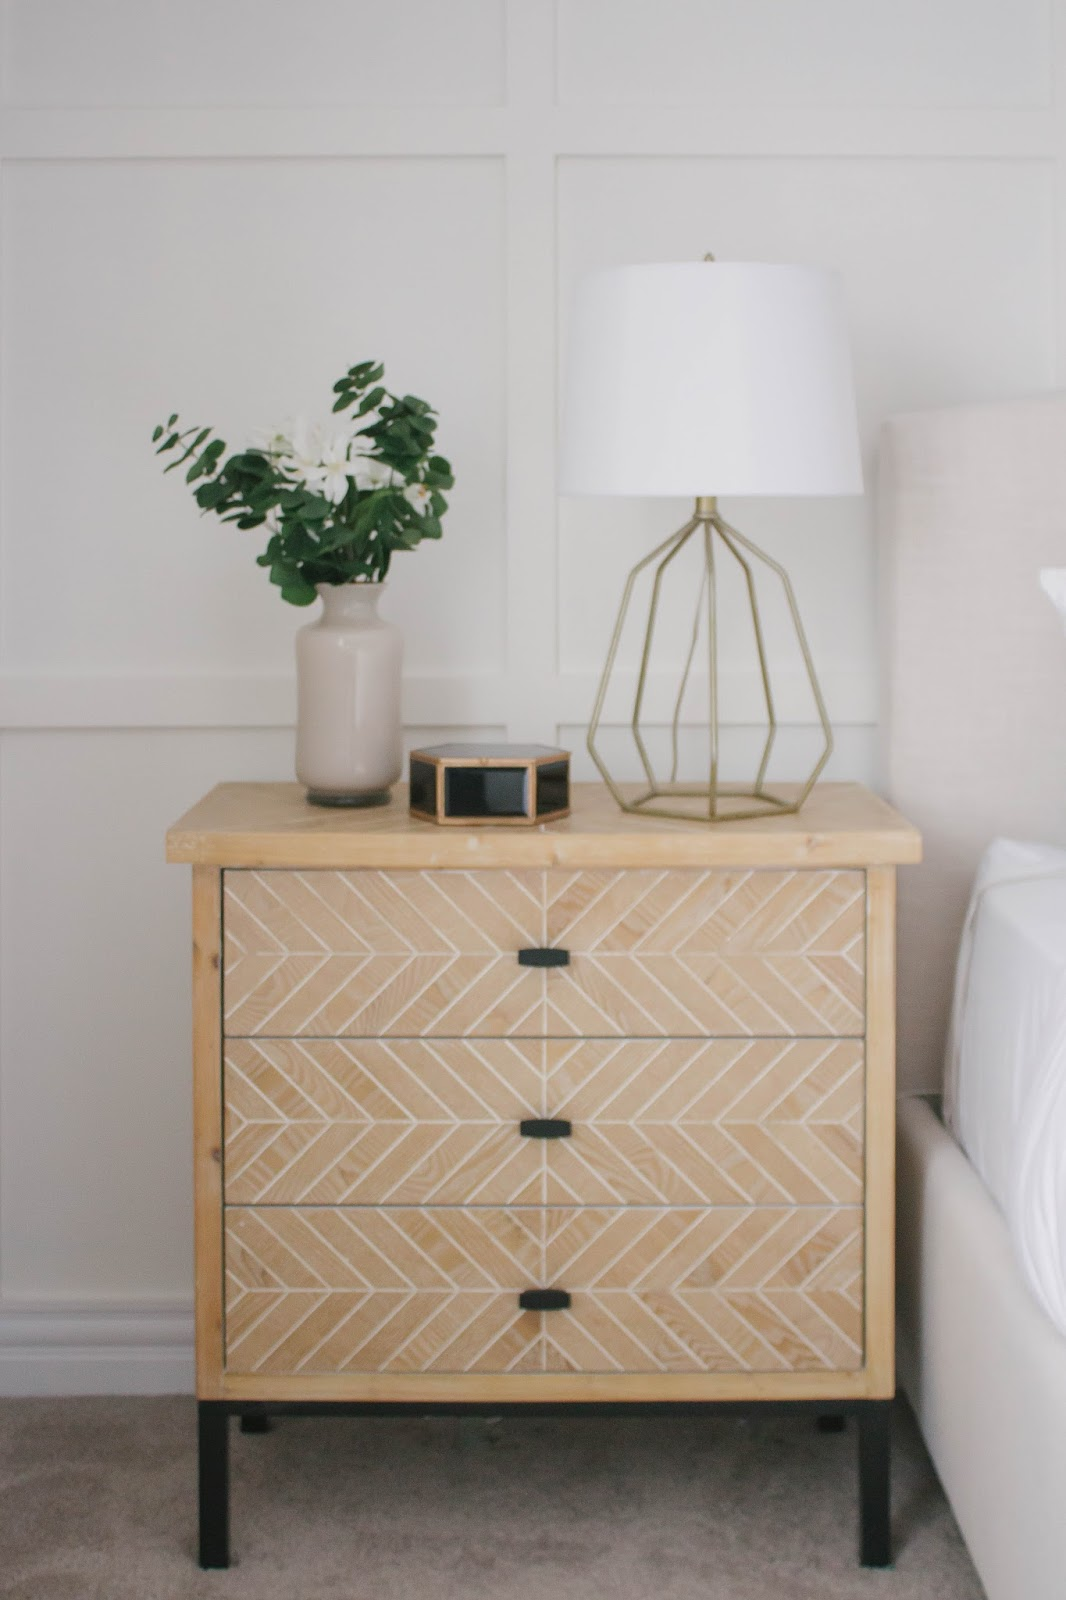 master bedroom refresh with homesense house hire how style nightstand metal base spotted these two wooden nightstands black and this beautiful white carving detail throughout not